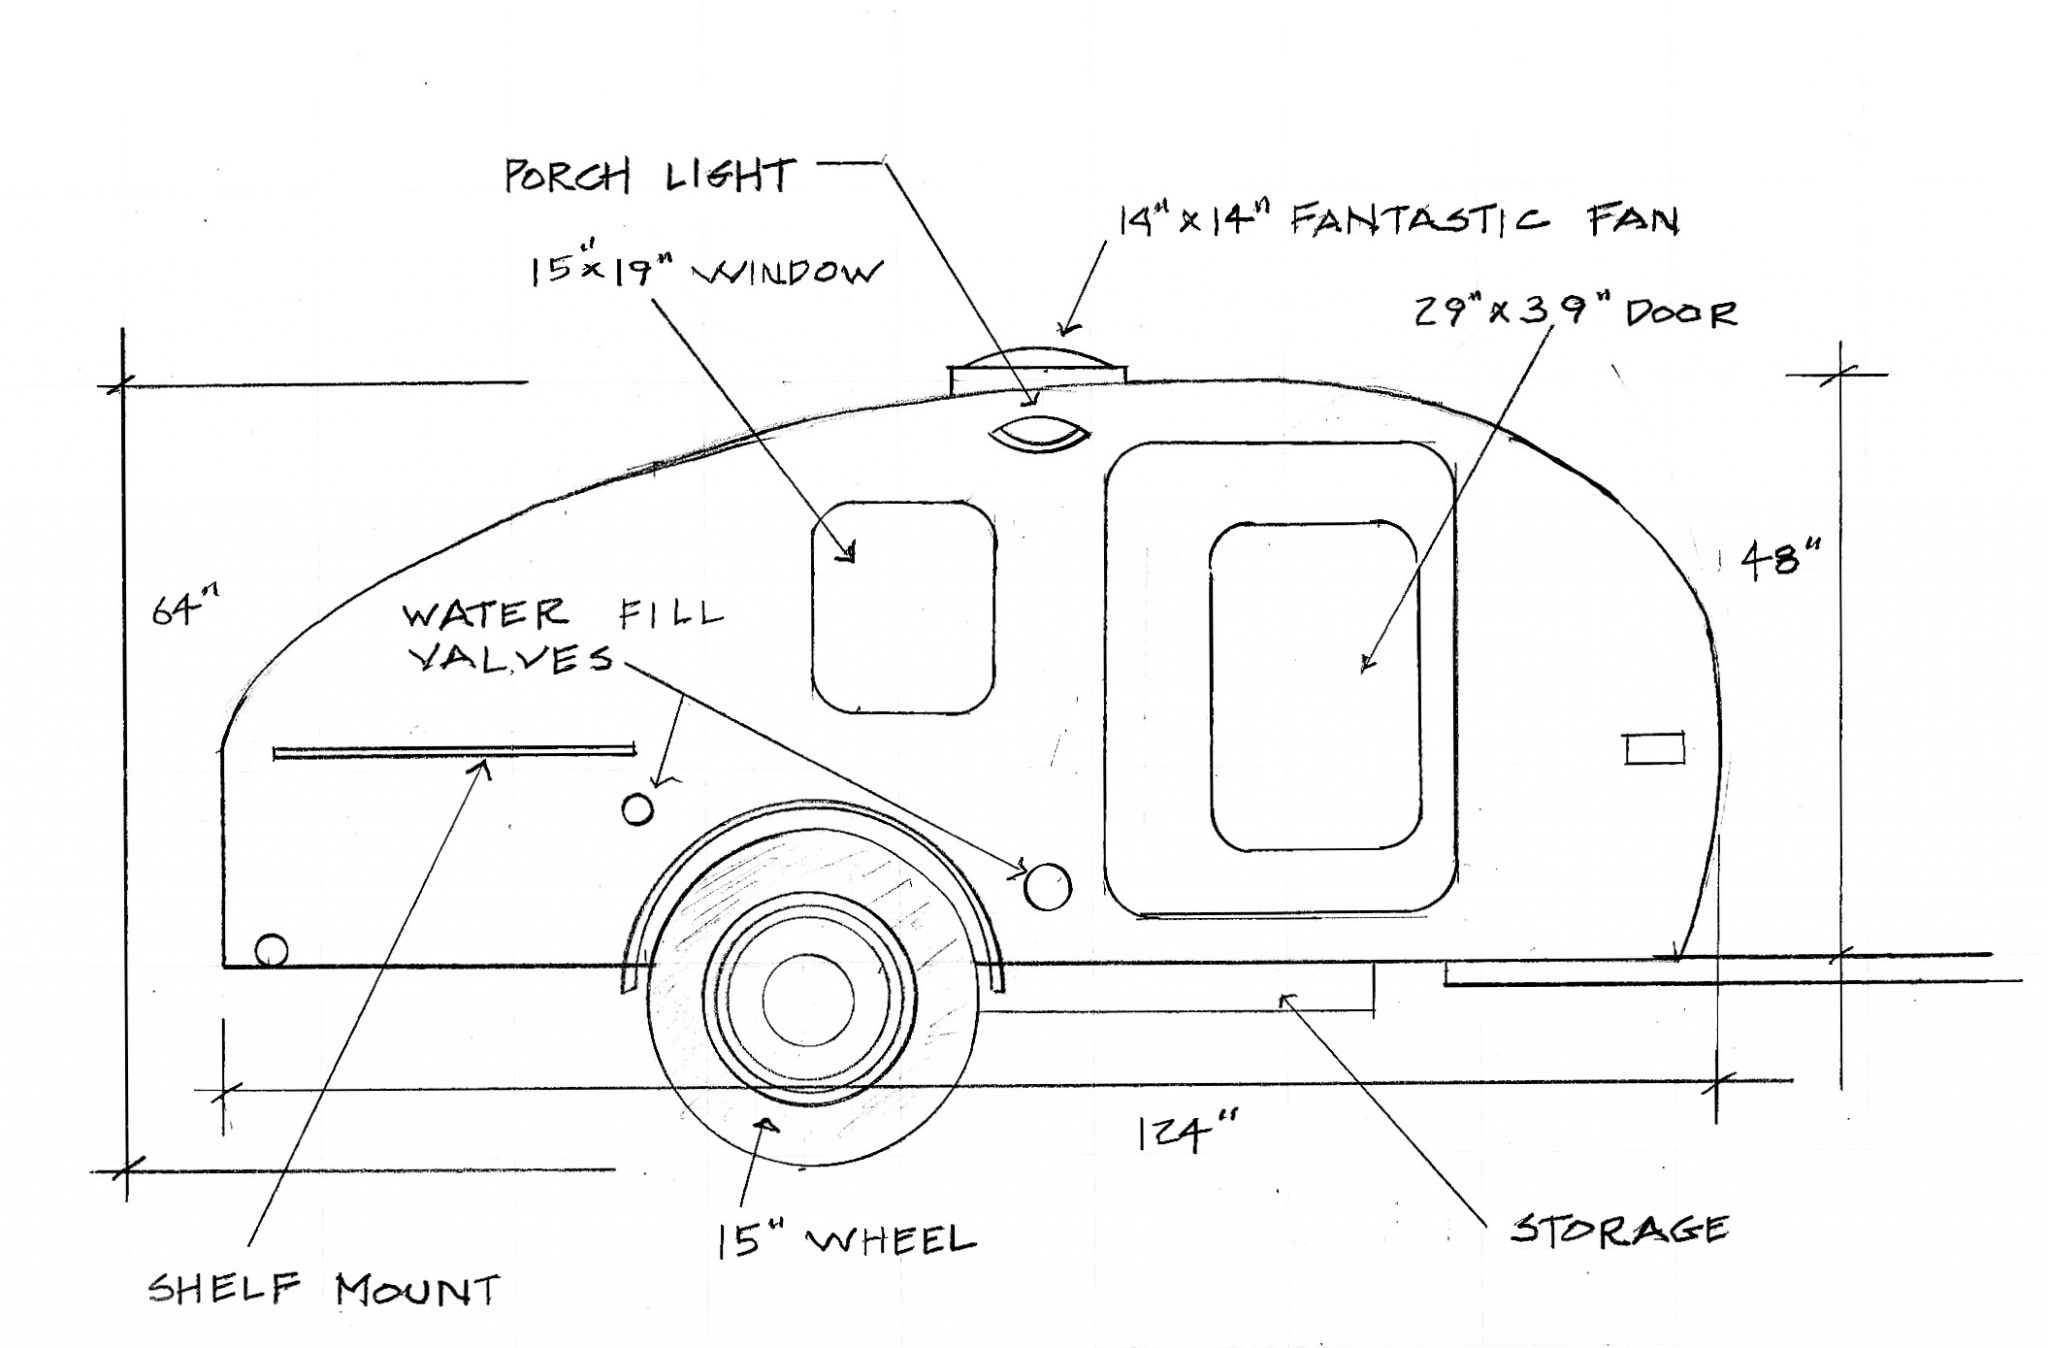 12 volt wiring diagram for camper trailer